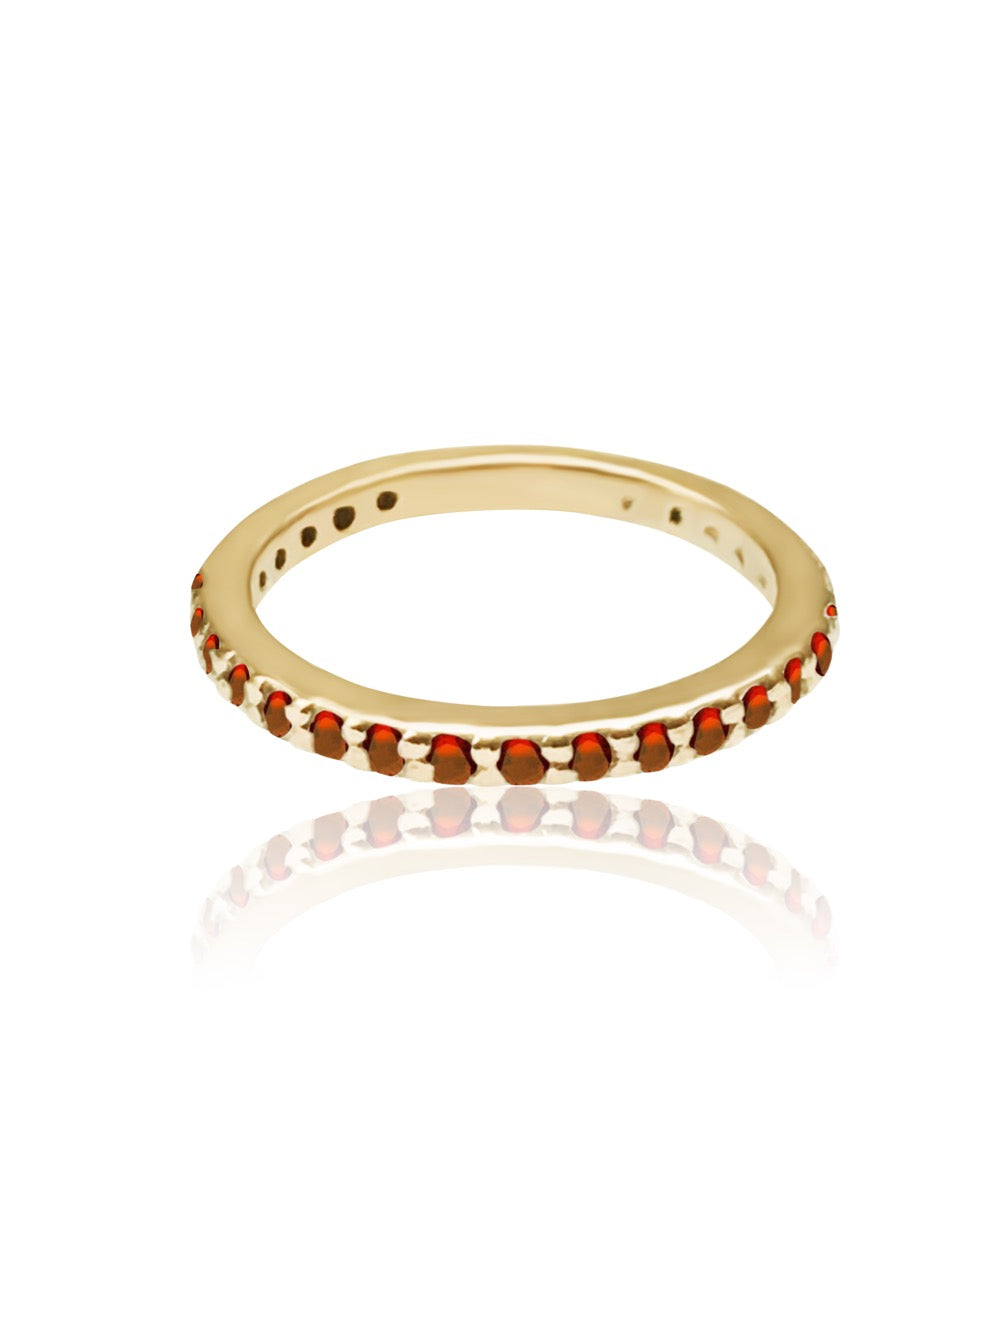 14k Gold Gemstone Band